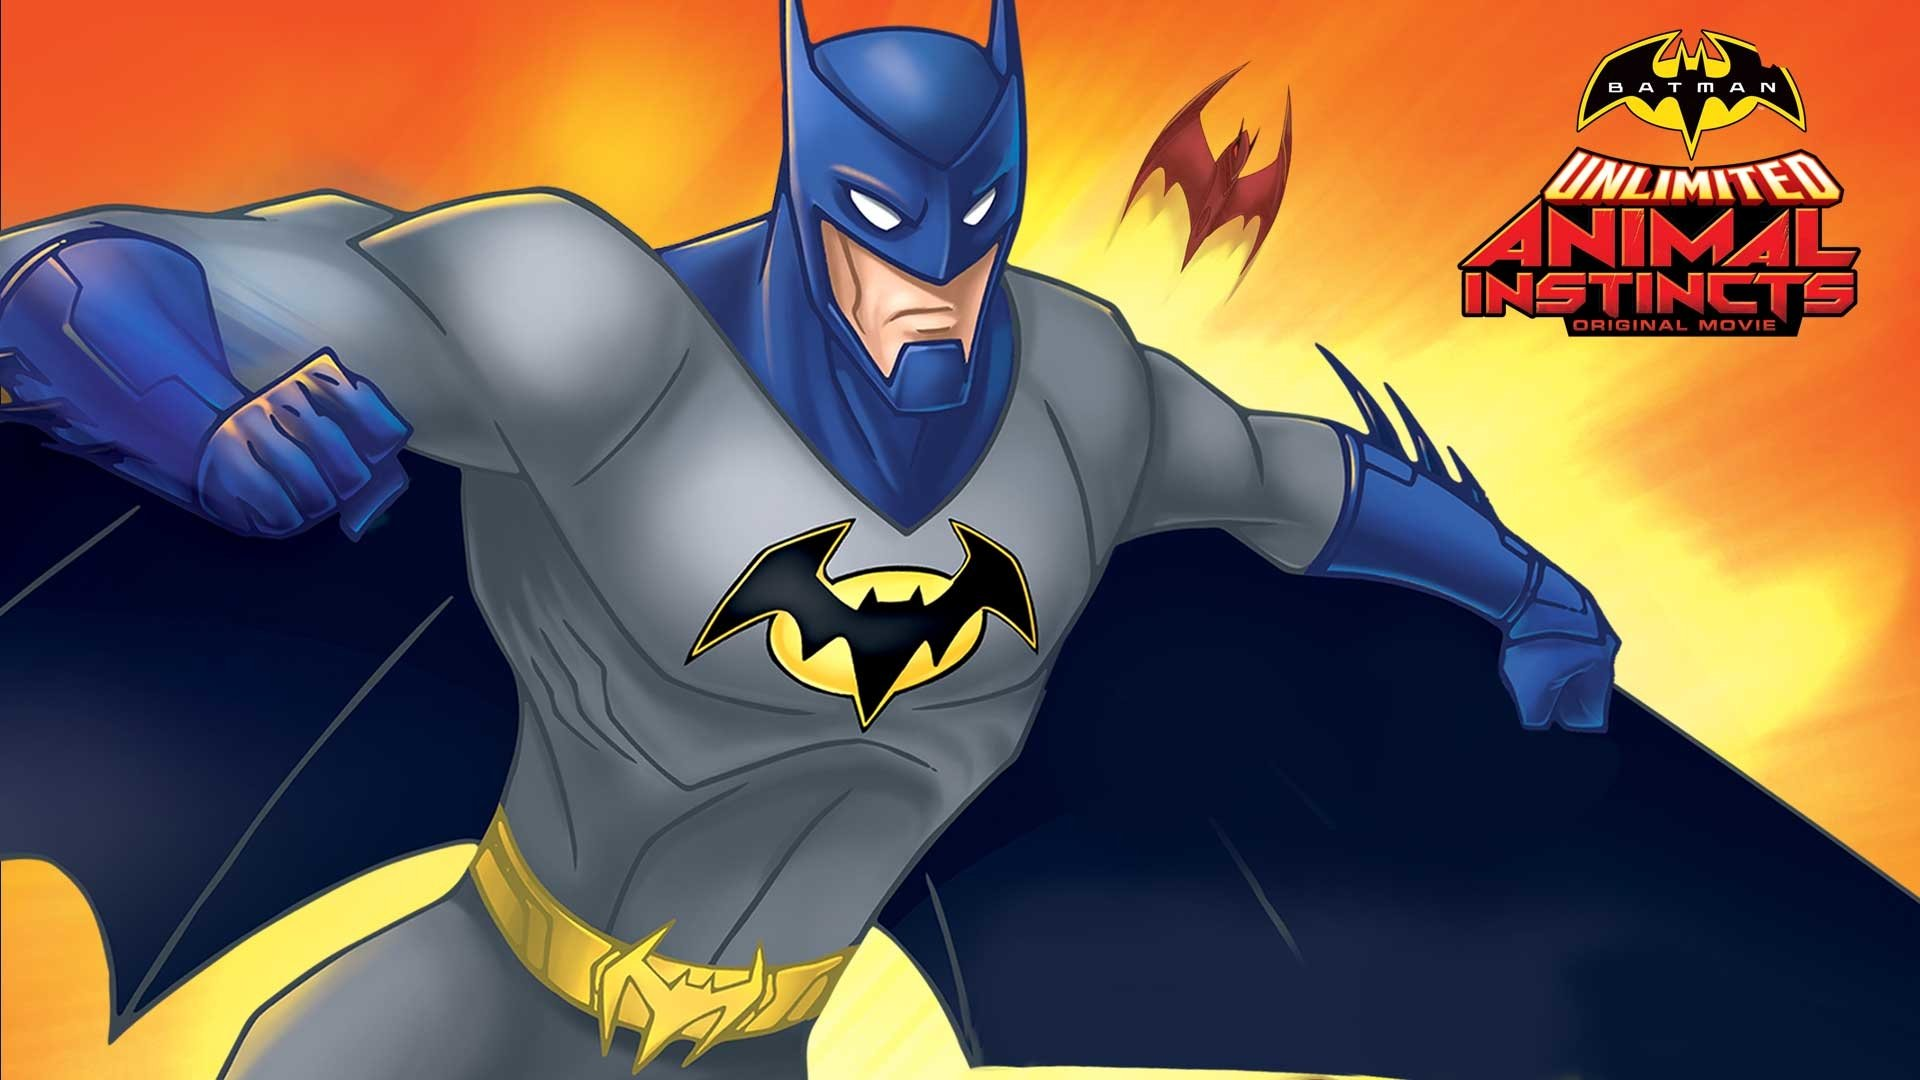 Animal Instincts 3 Full Movie 3 batman unlimited: animal instincts hd wallpapers